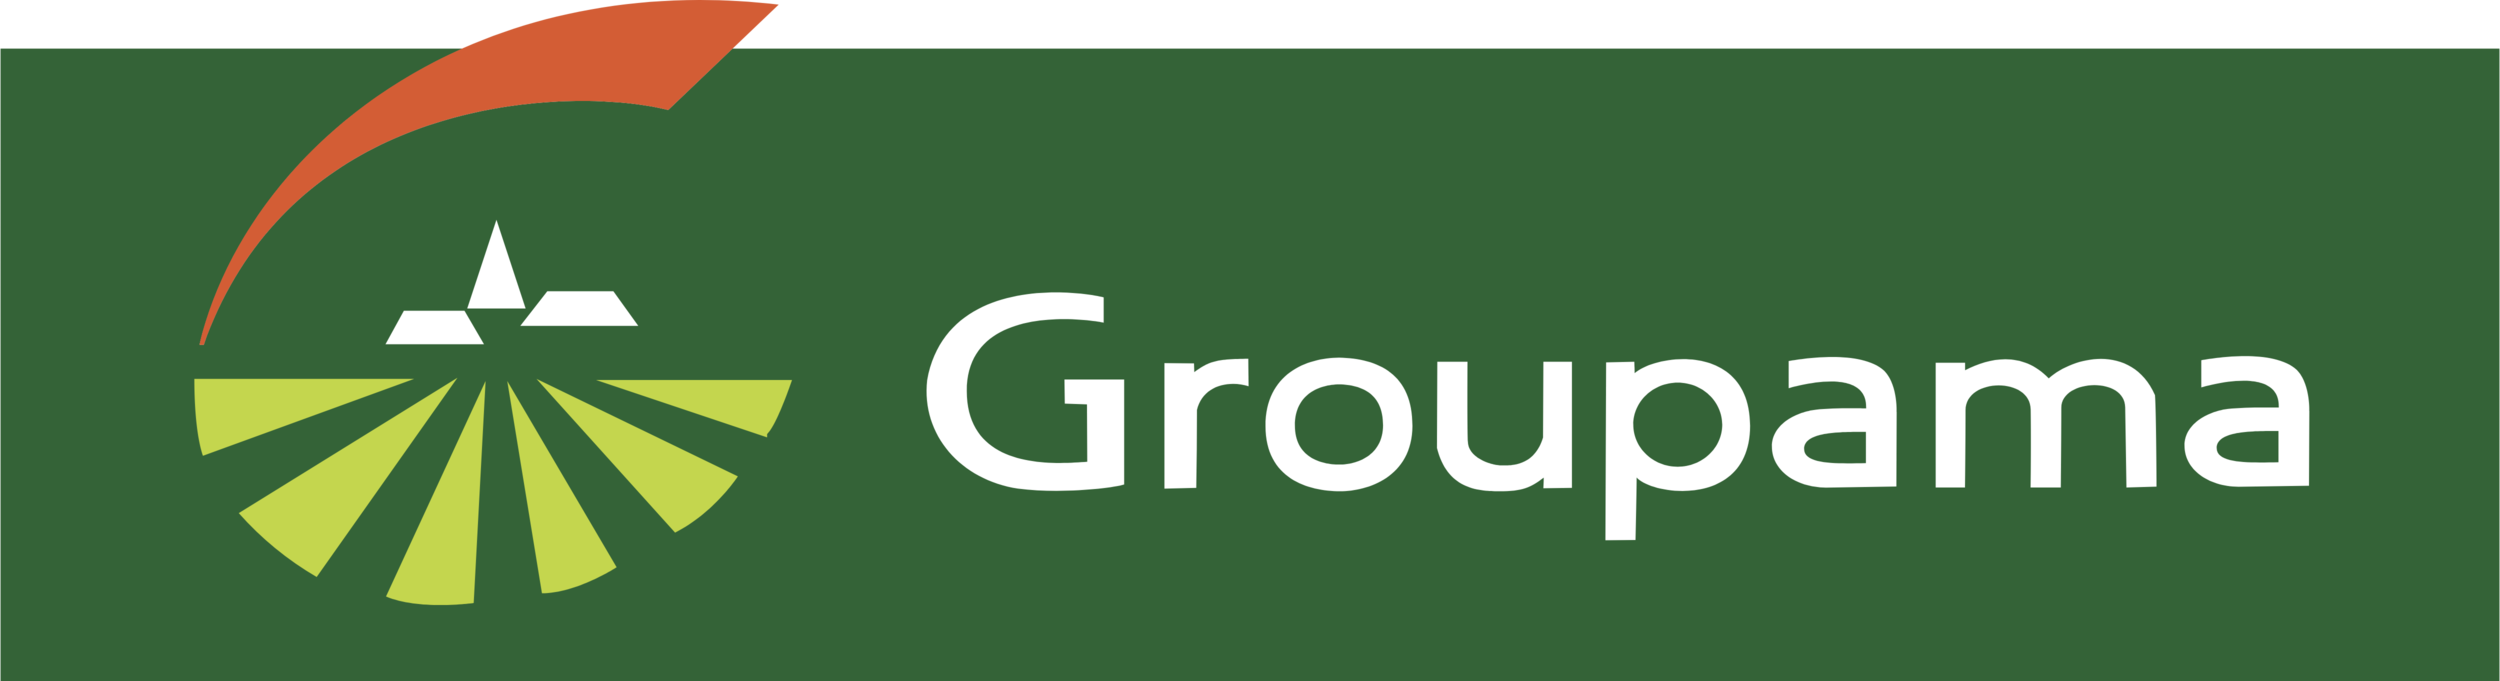 Groupama_logo_green.png